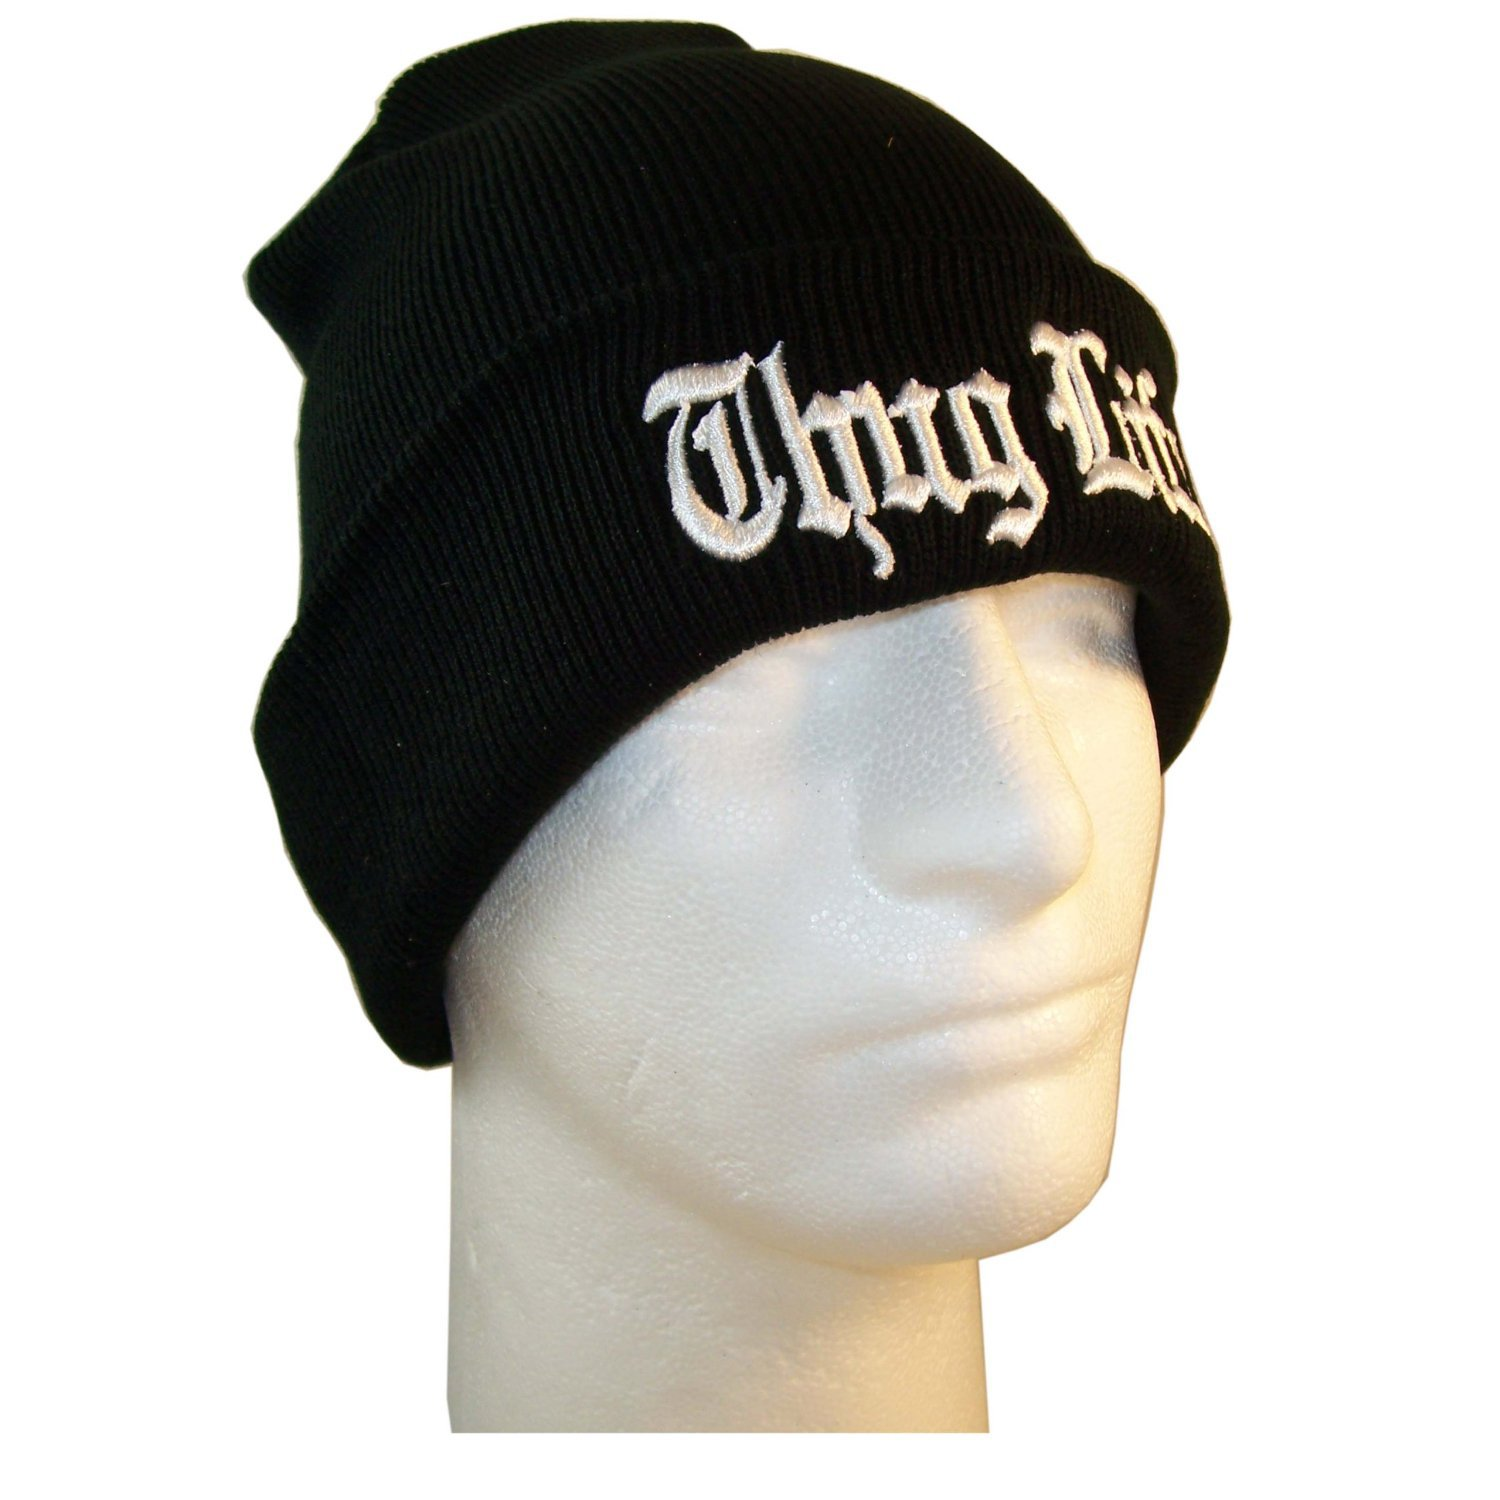 0bf38f4771a Europe and The United States Men and Women s Hip Hop Thug Life Embroidery  Knitted Wool Elastic Beanies Hat Ski Cap RX128-in Skullies   Beanies from  Apparel ...